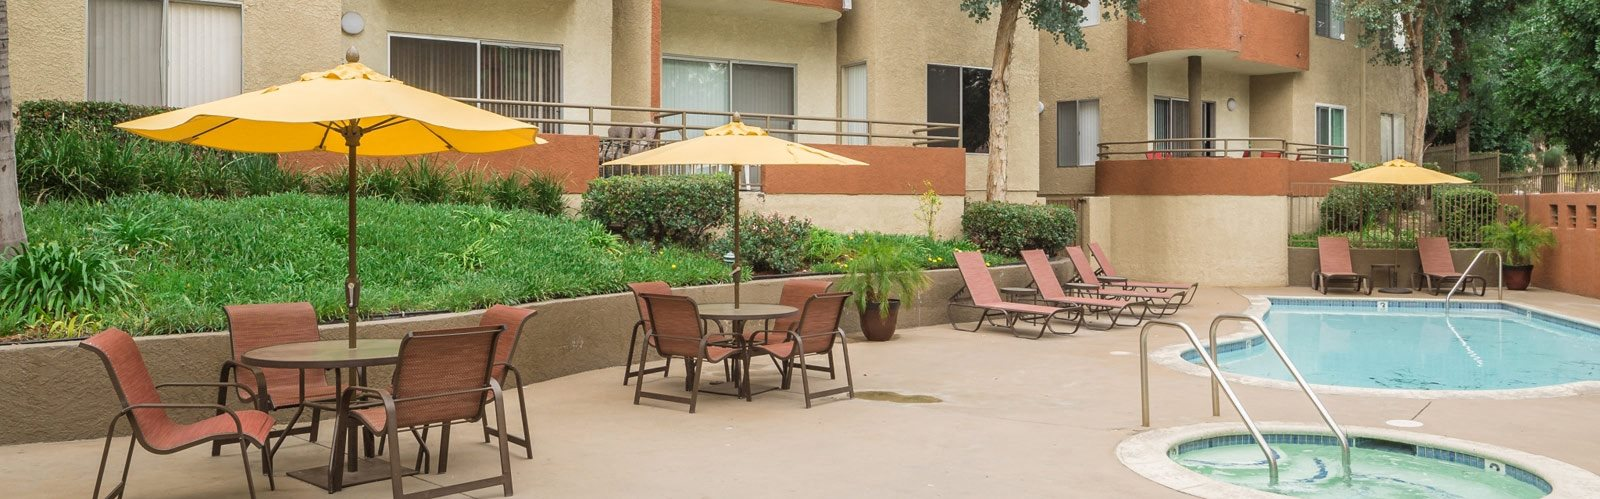 Poolside seating Rentals at Glenoaks Gardens in Sun Valley ca